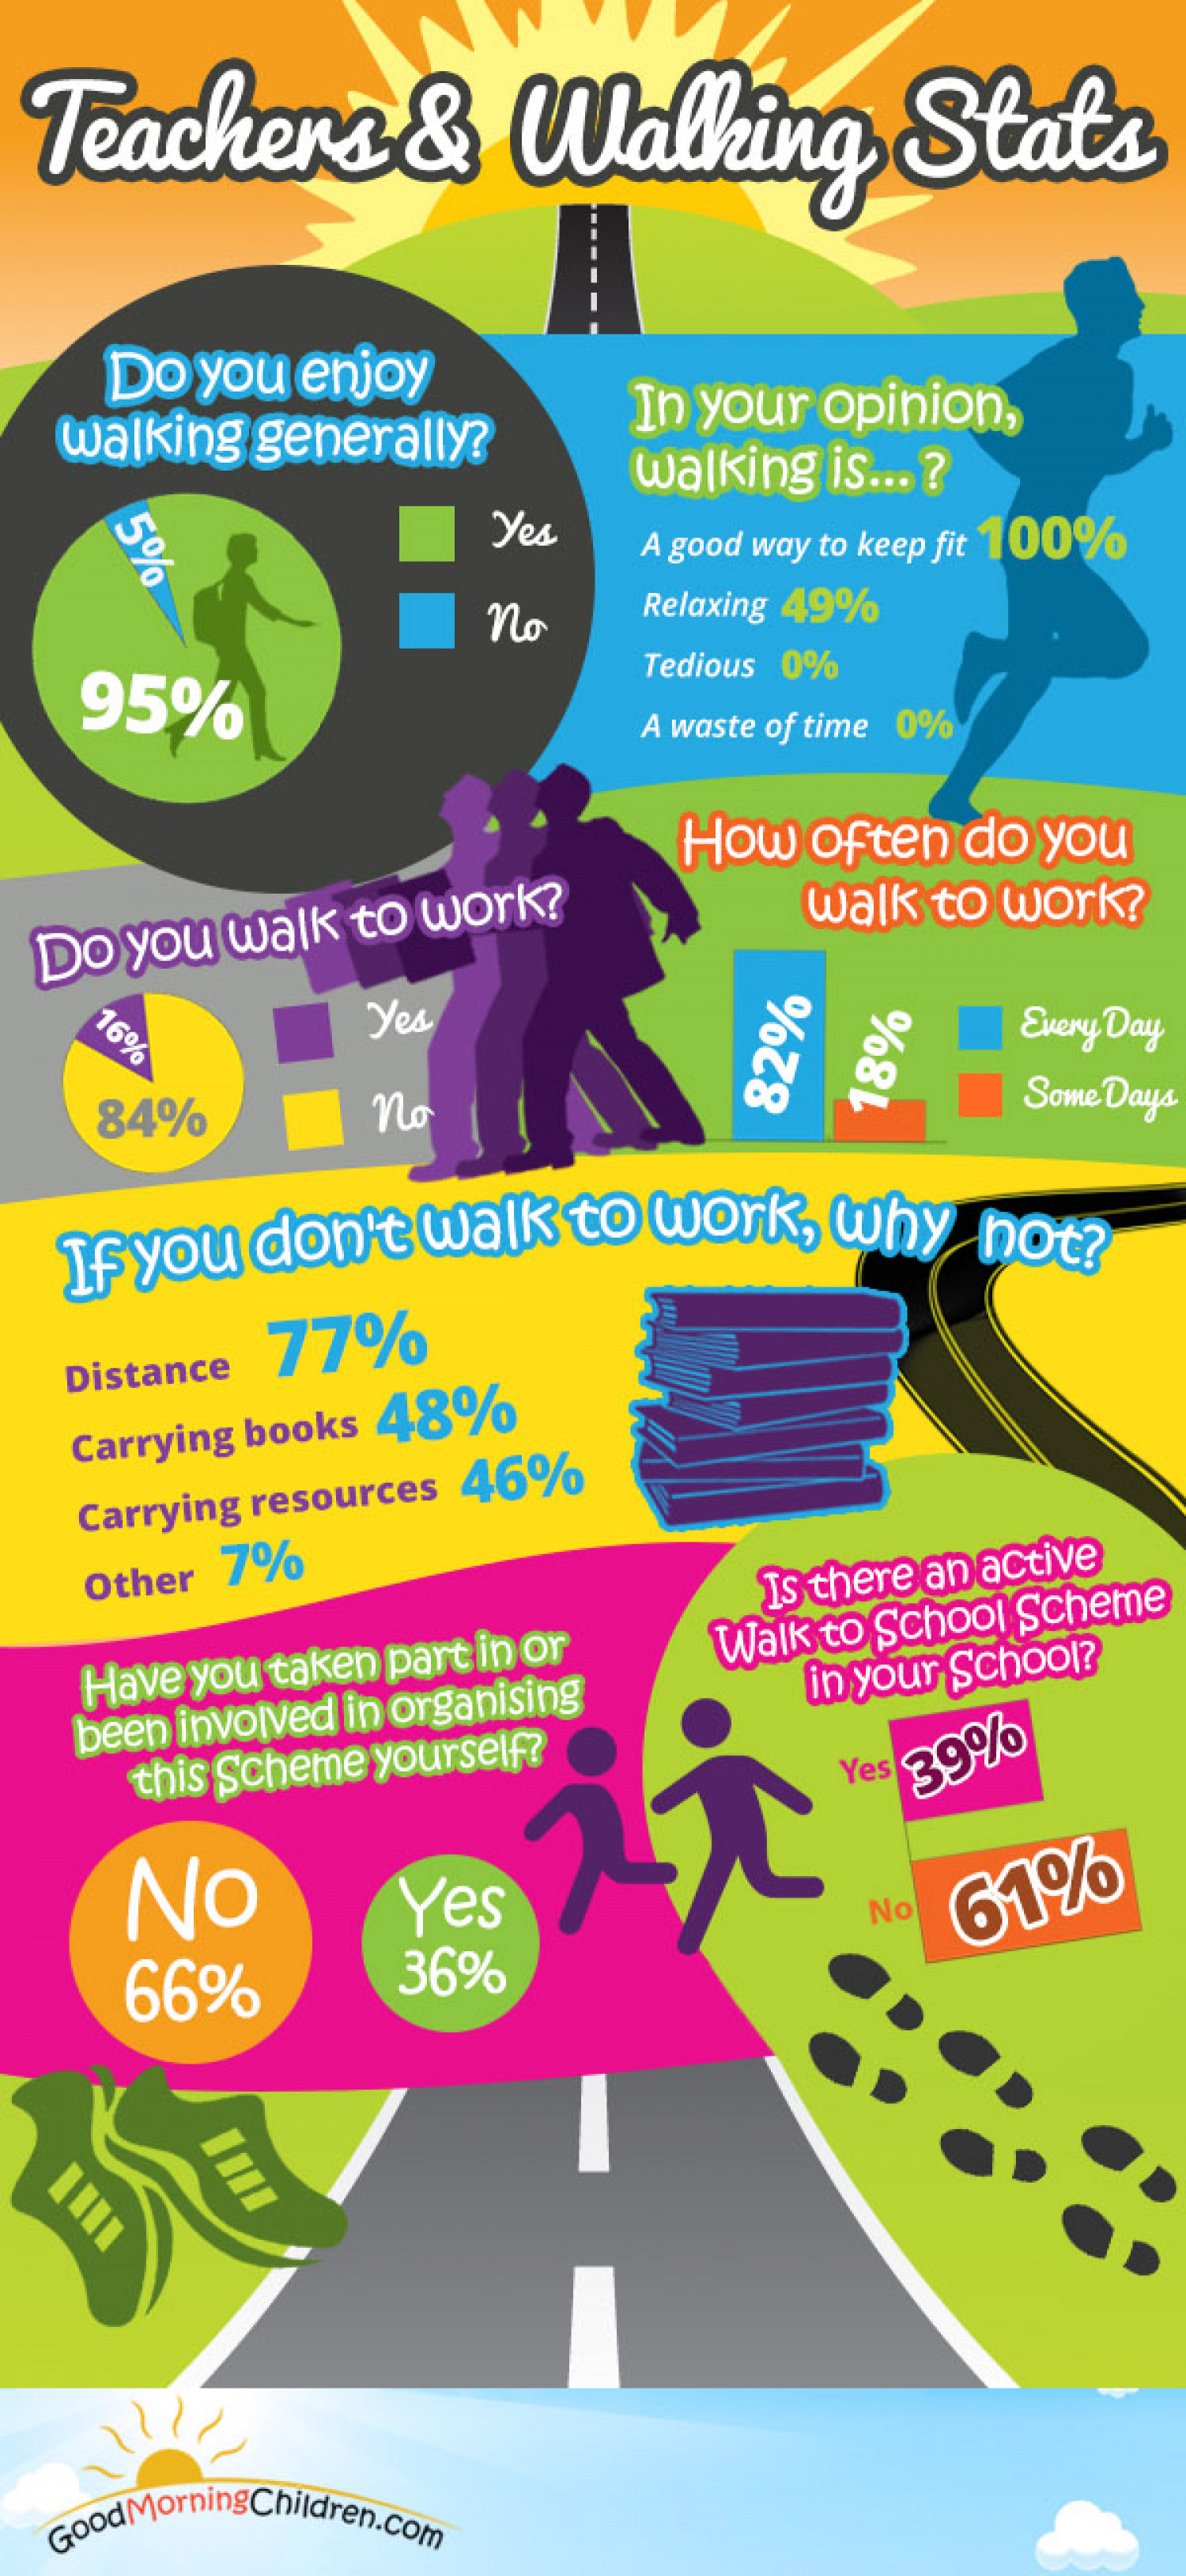 Teachers & Walking Stats Infographic